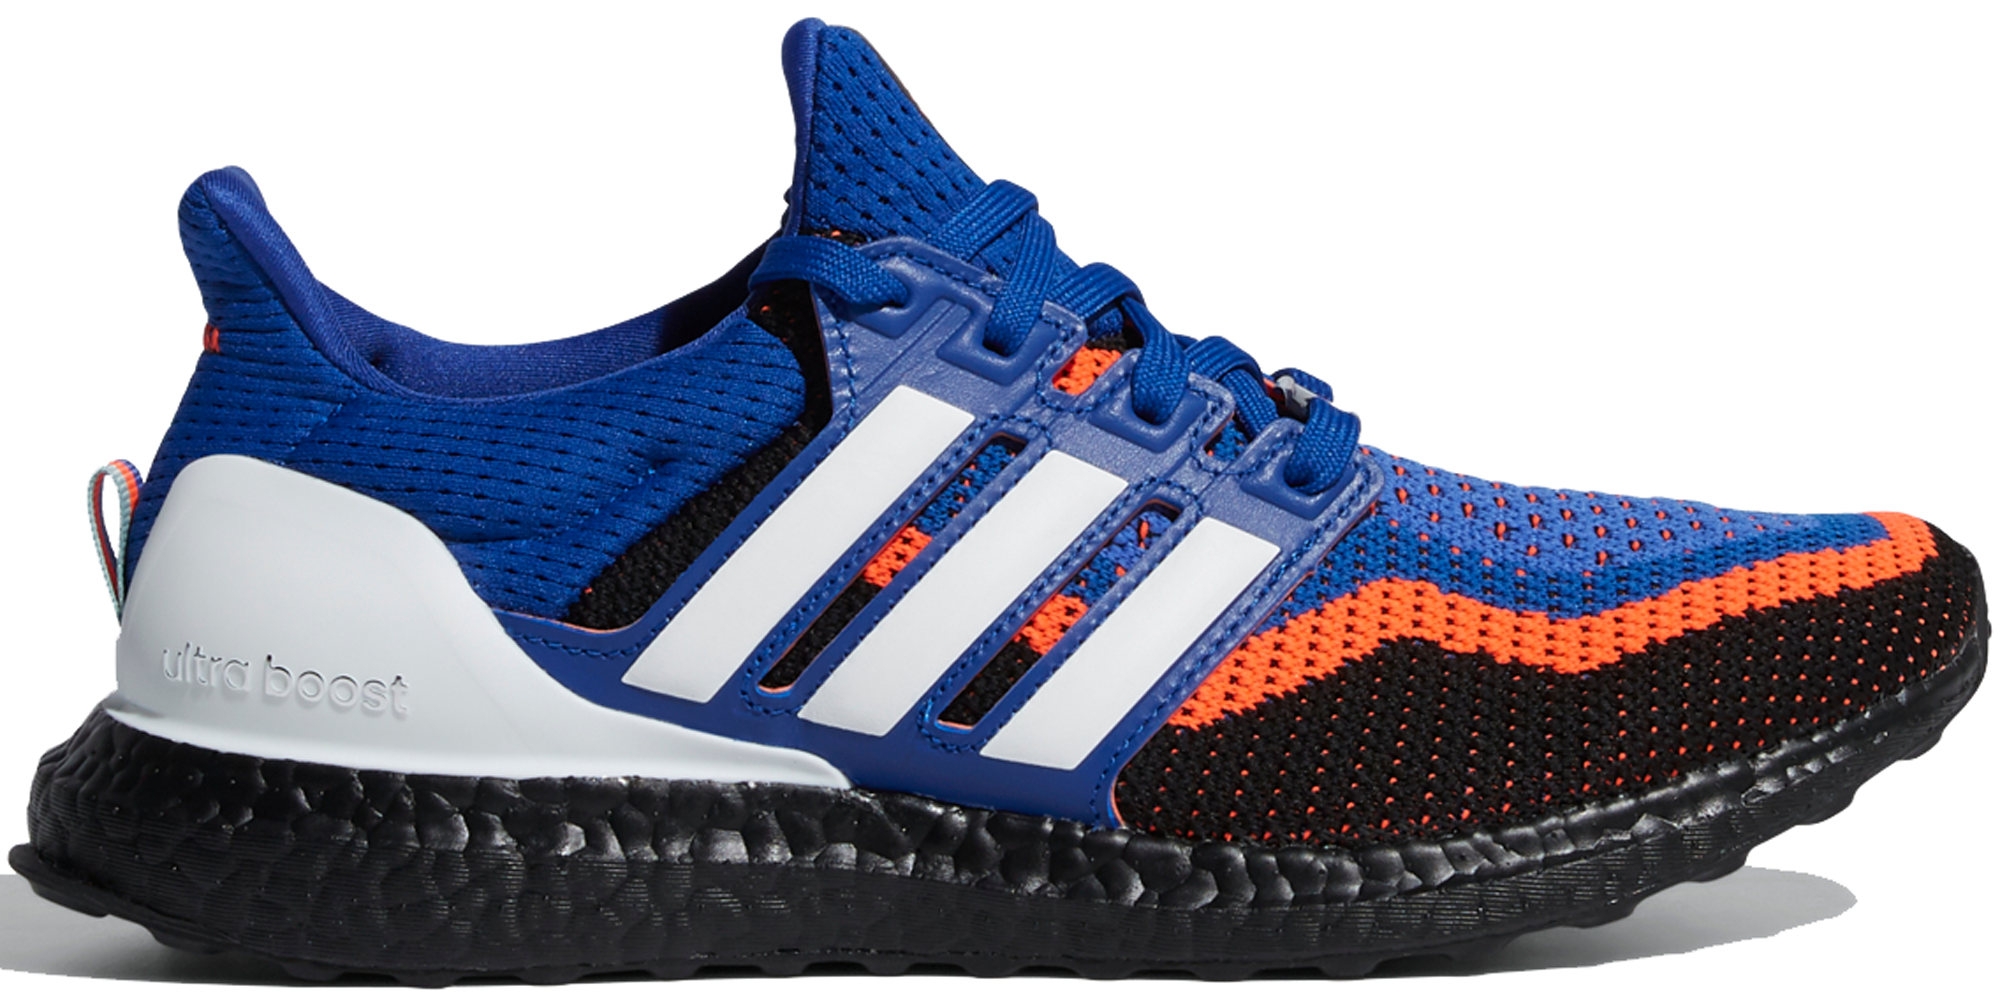 adidas Ultra Boost 2 Foot Locker Asterisk Collective